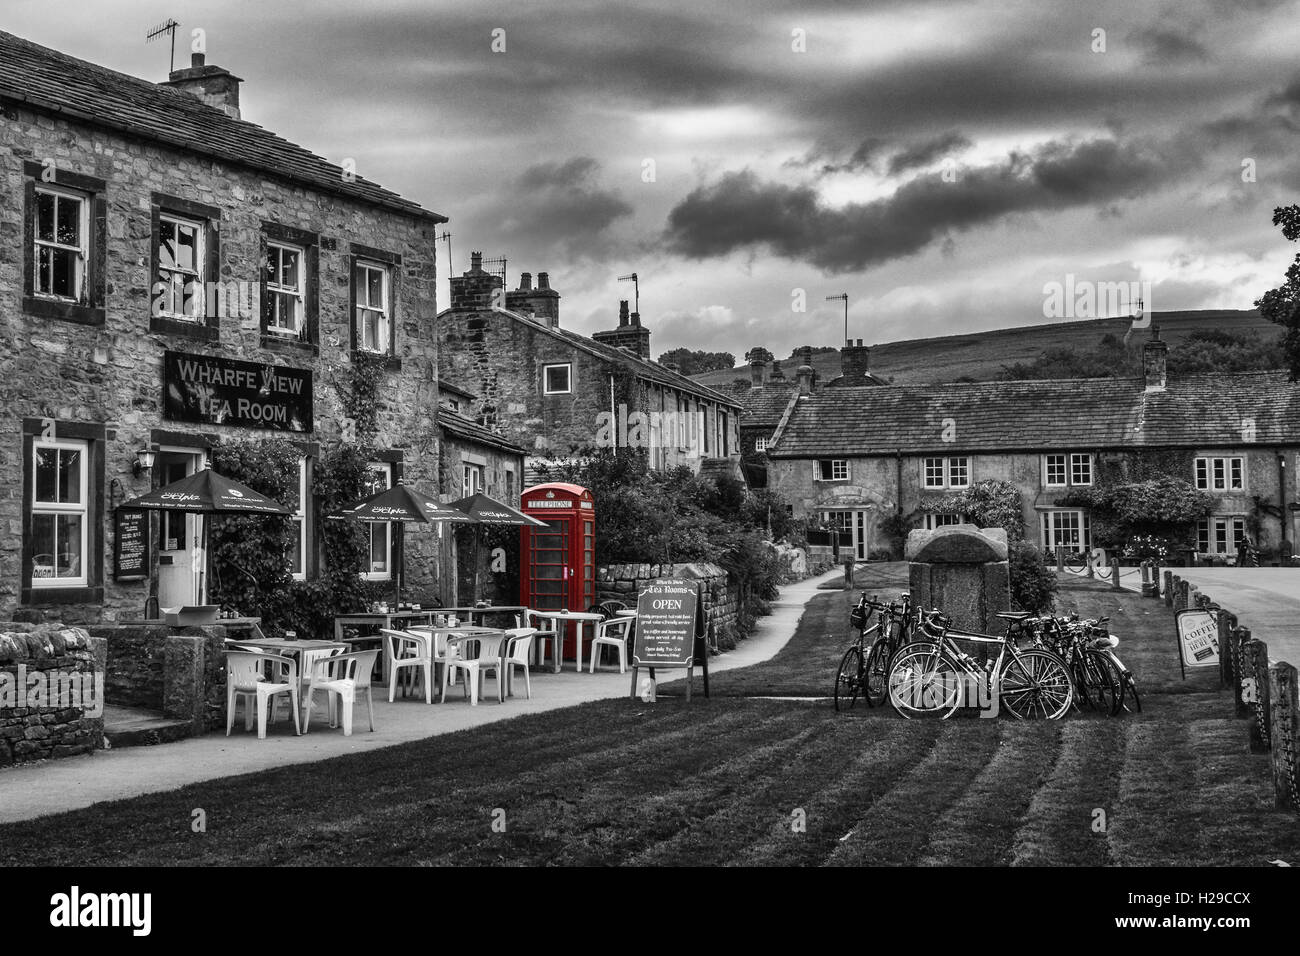 Black and white landscapes: Burnsall village with a traditional red telephone box, North Yorkshire, England, UK - Stock Image